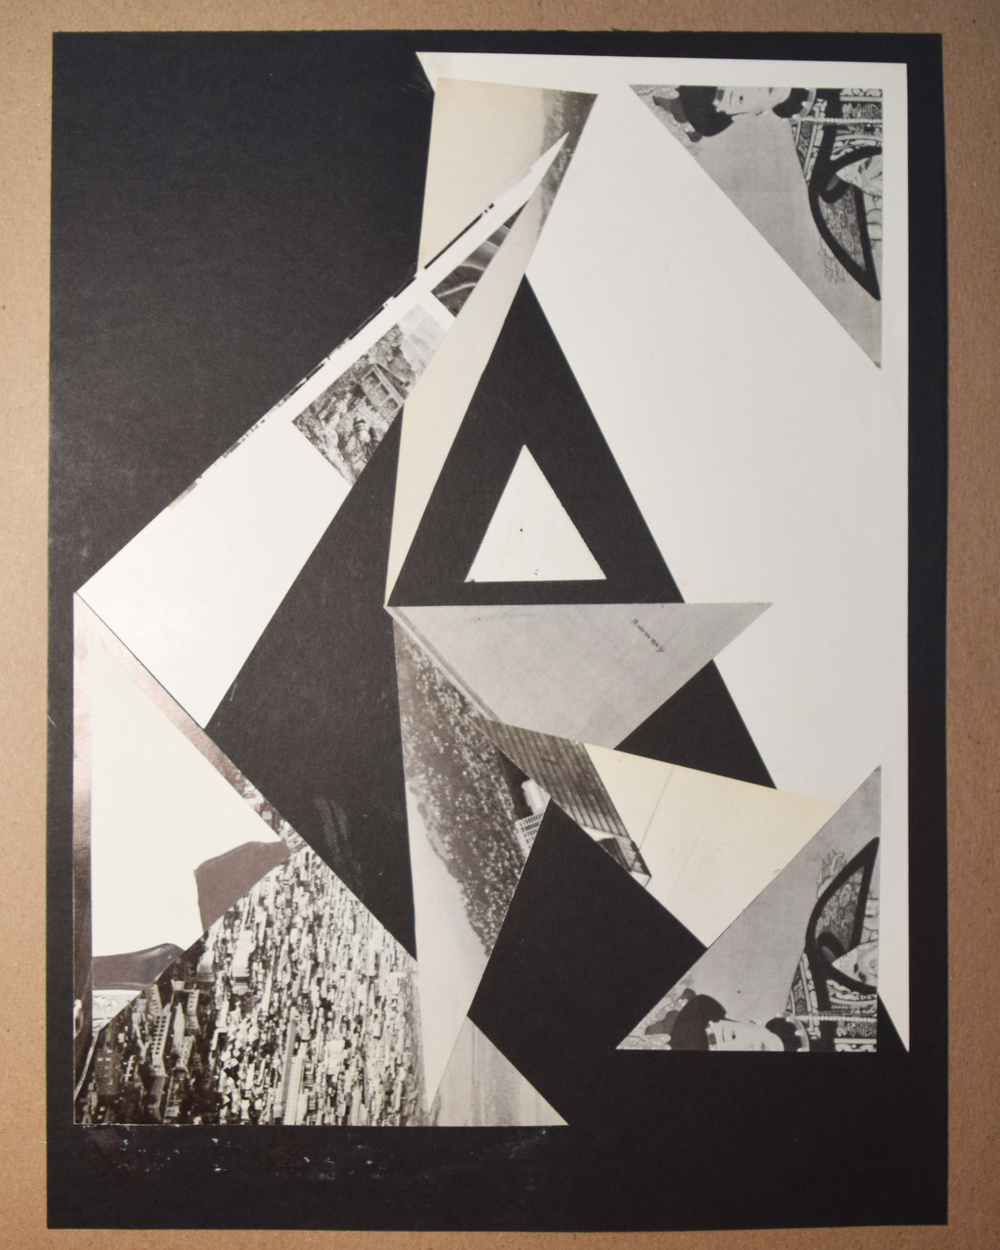 Grayscale-Triangles.jpg